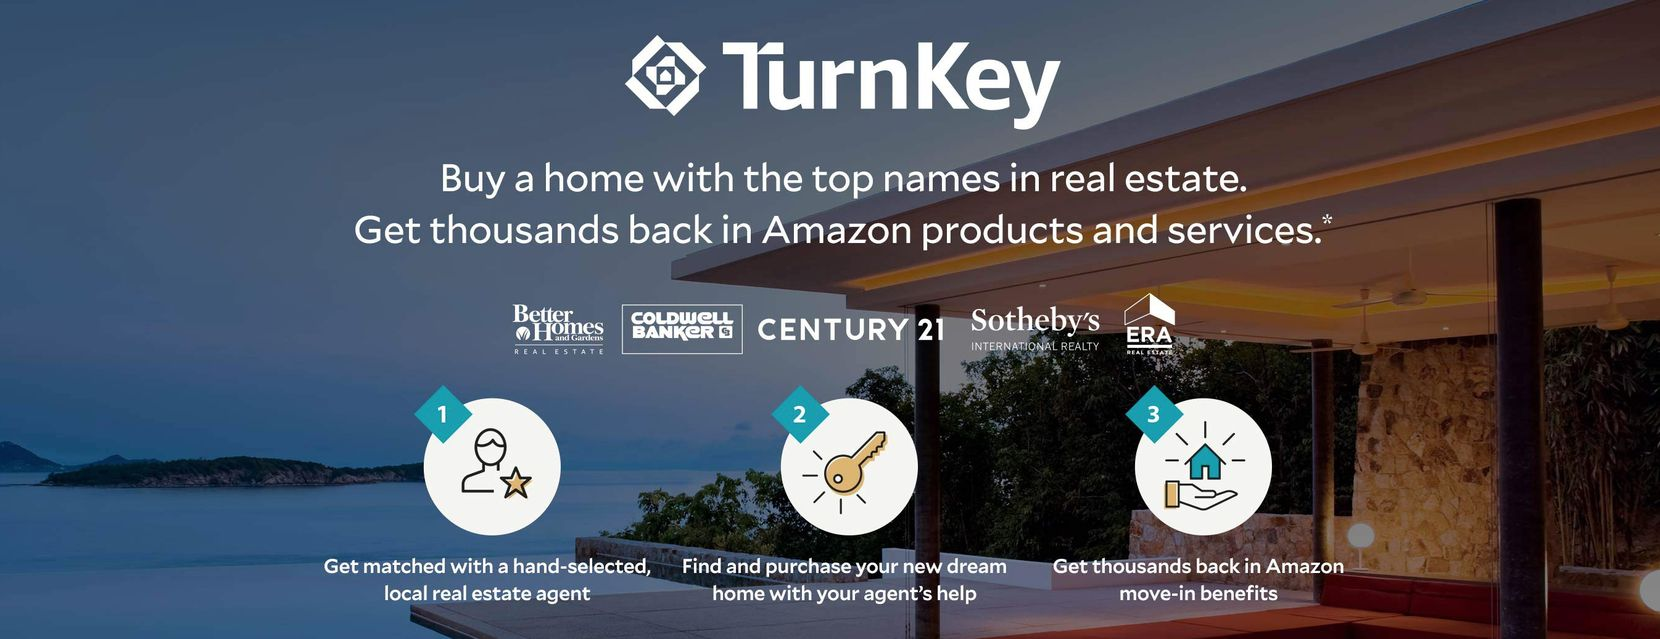 TurnKey has launched in 15 U.S. markets including D-FW.